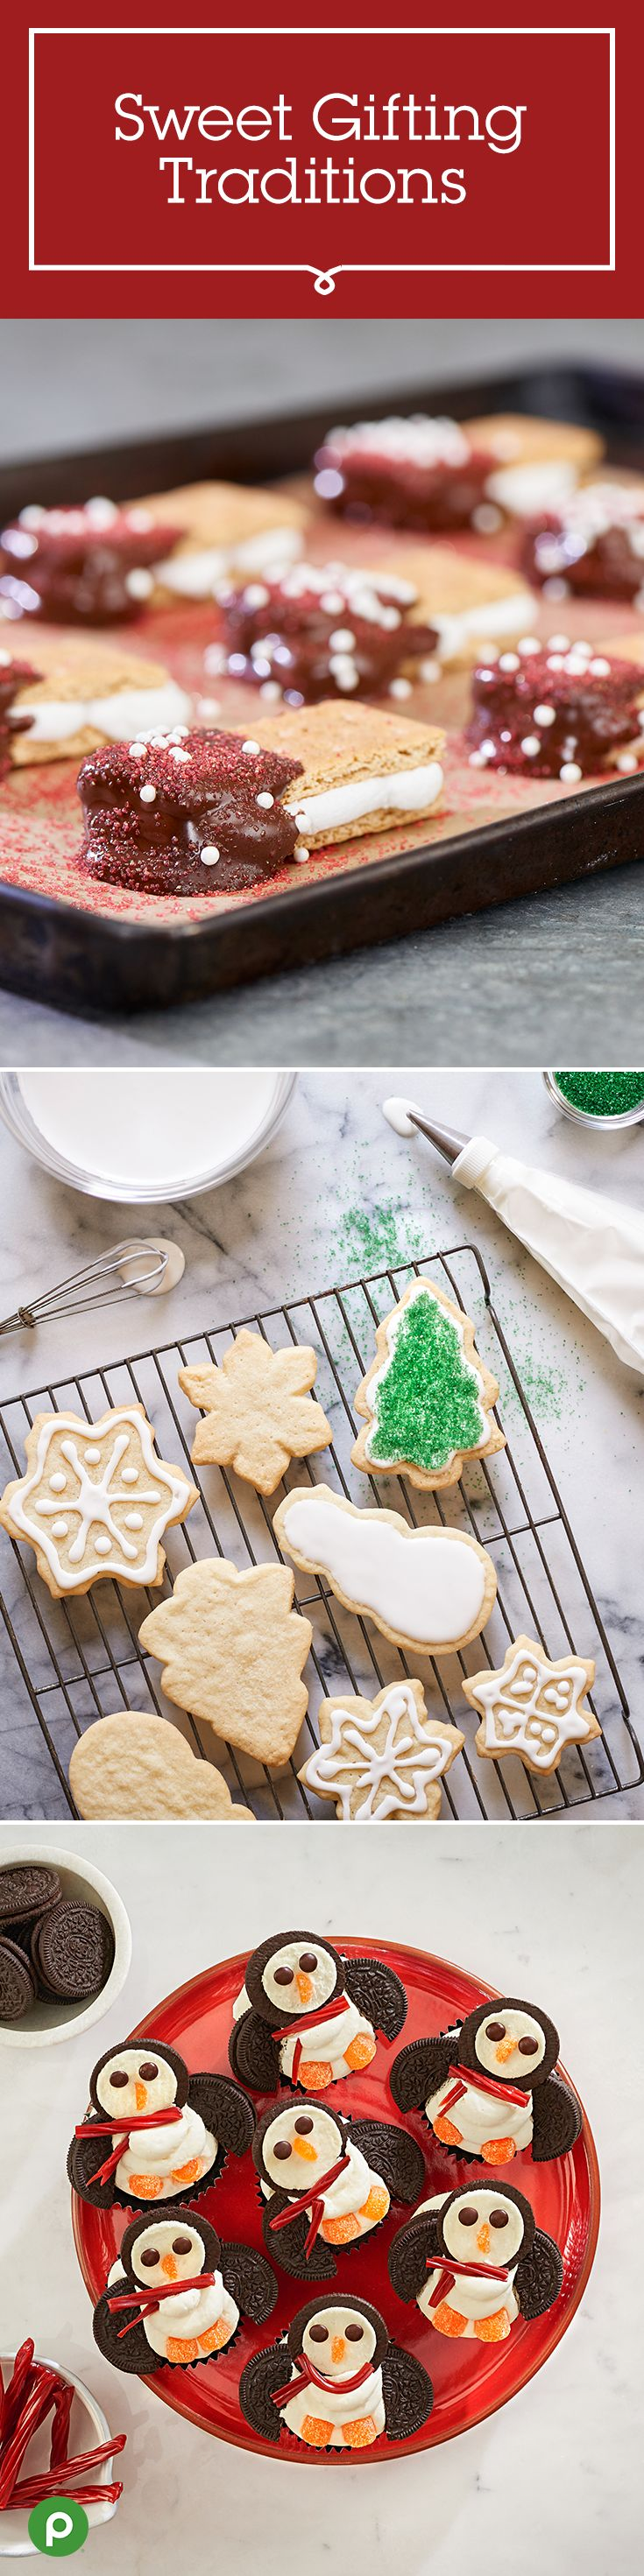 The best traditions are the ones that are shared. Here are three cookie creations that are sure to bring joy to any sweet tooth: Chocolate-Covered S'mores, Sugar Cookies with Royal Icing, and Polar Penguin Cupcakes. Get these Publix recipes to make for your family and friends.